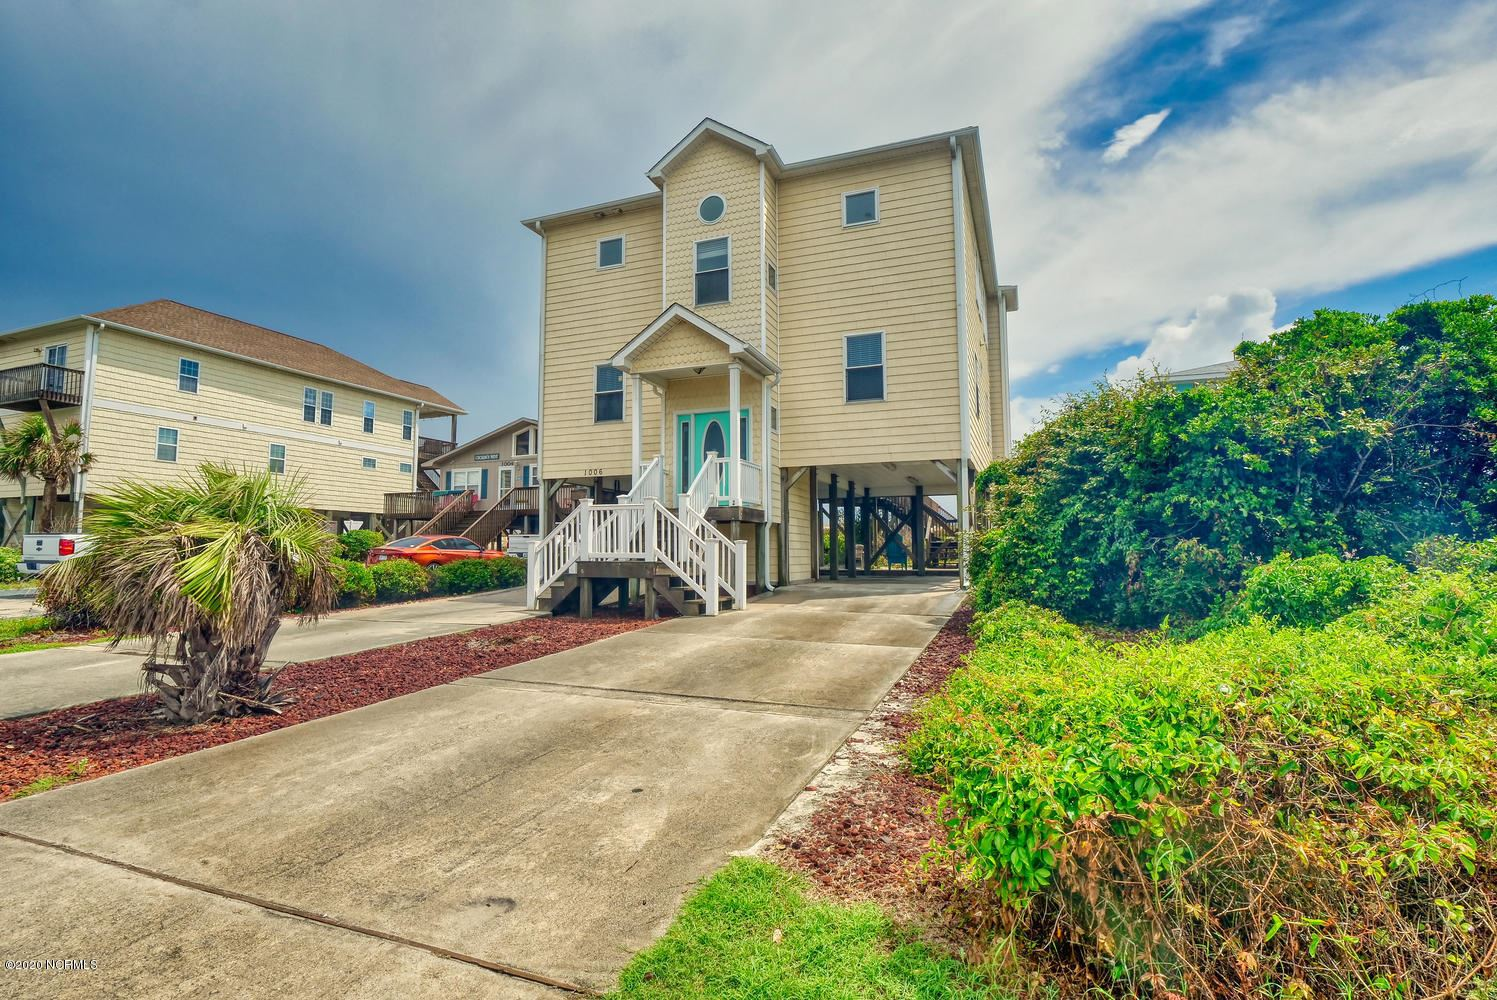 1006 S Shore Drive, Surf City, NC 28445 - MLS#: 100229854